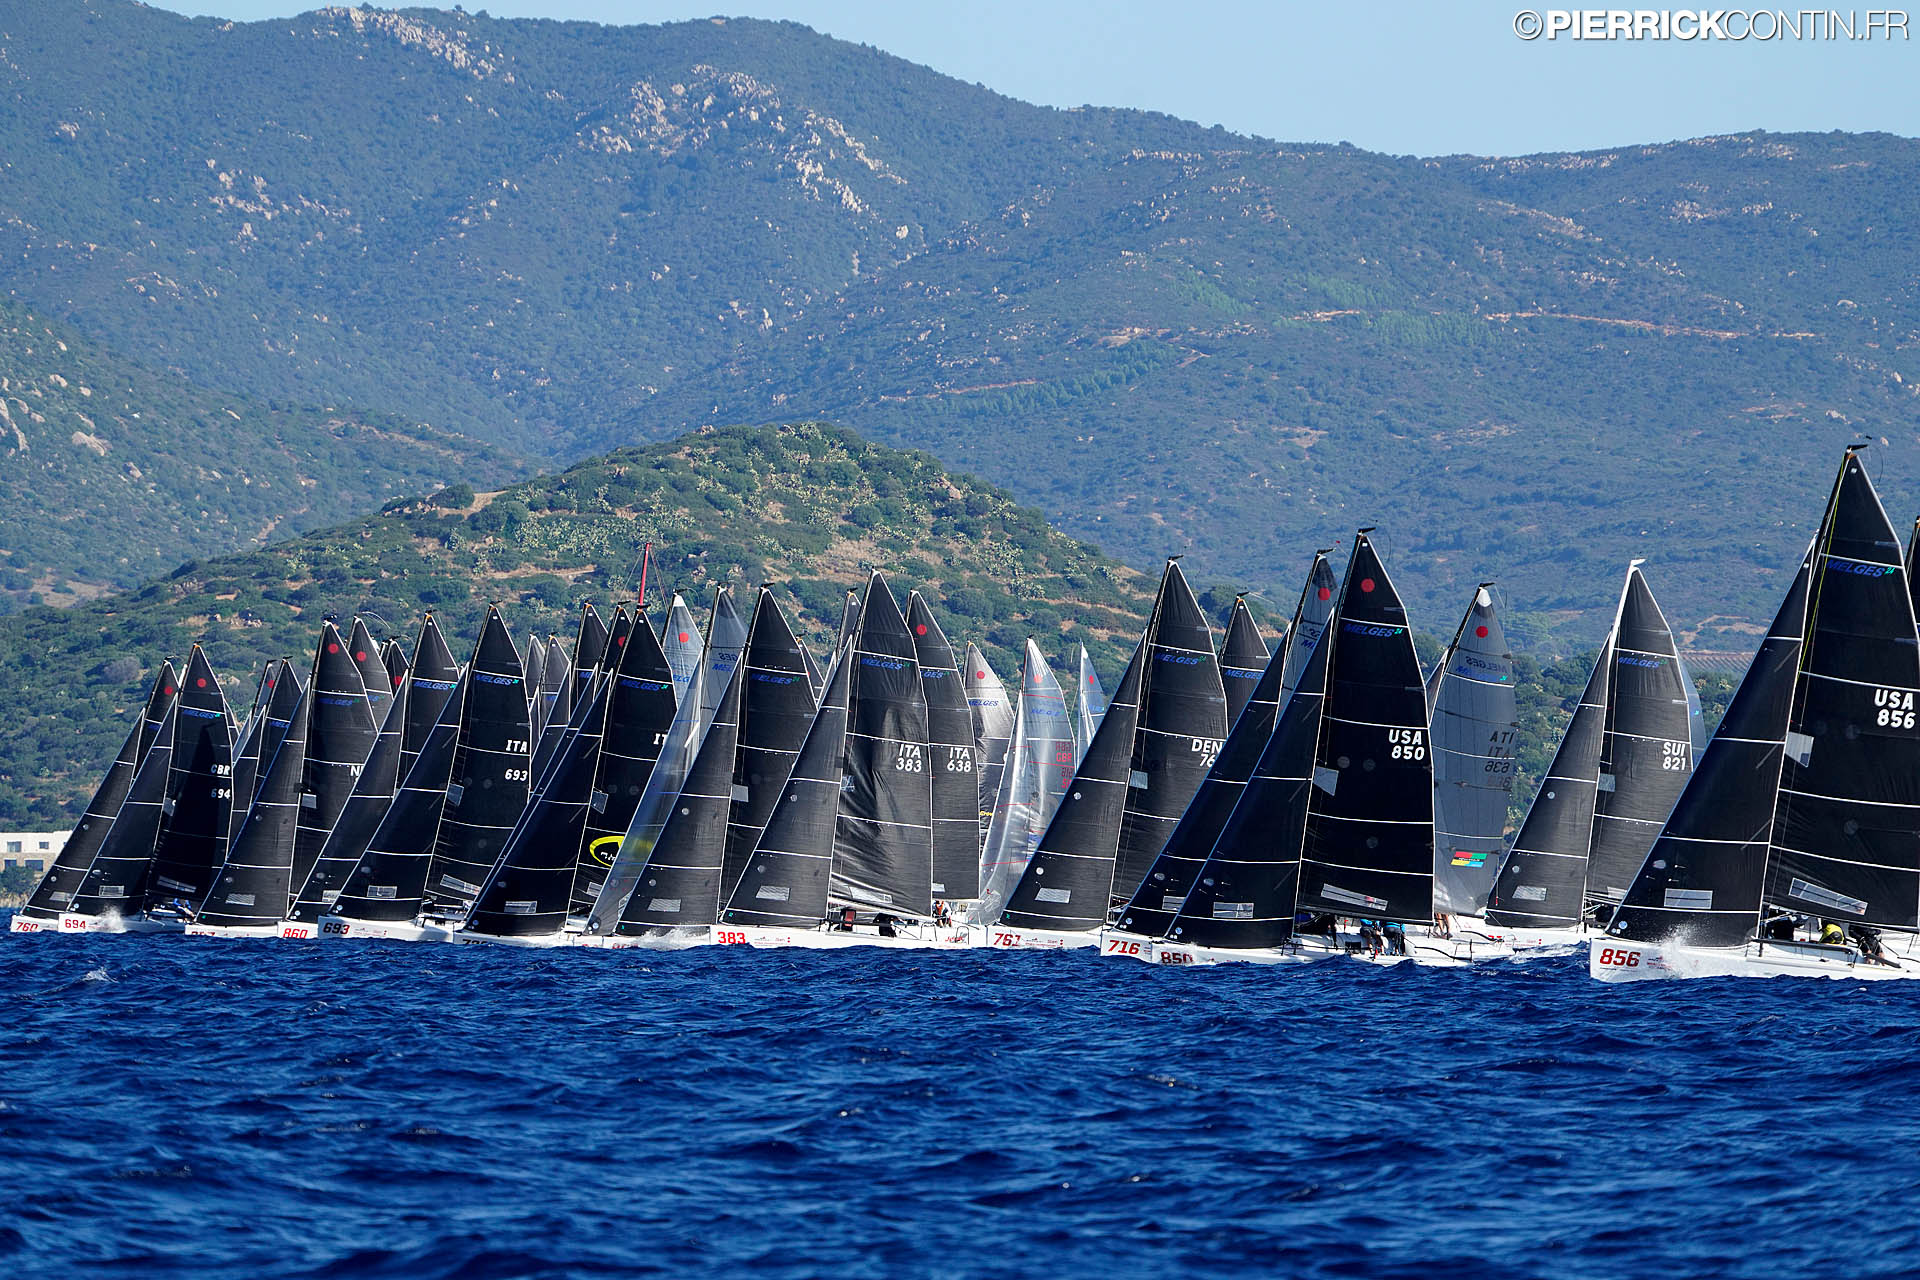 Melges 24 Worlds 2019 in Villasimius